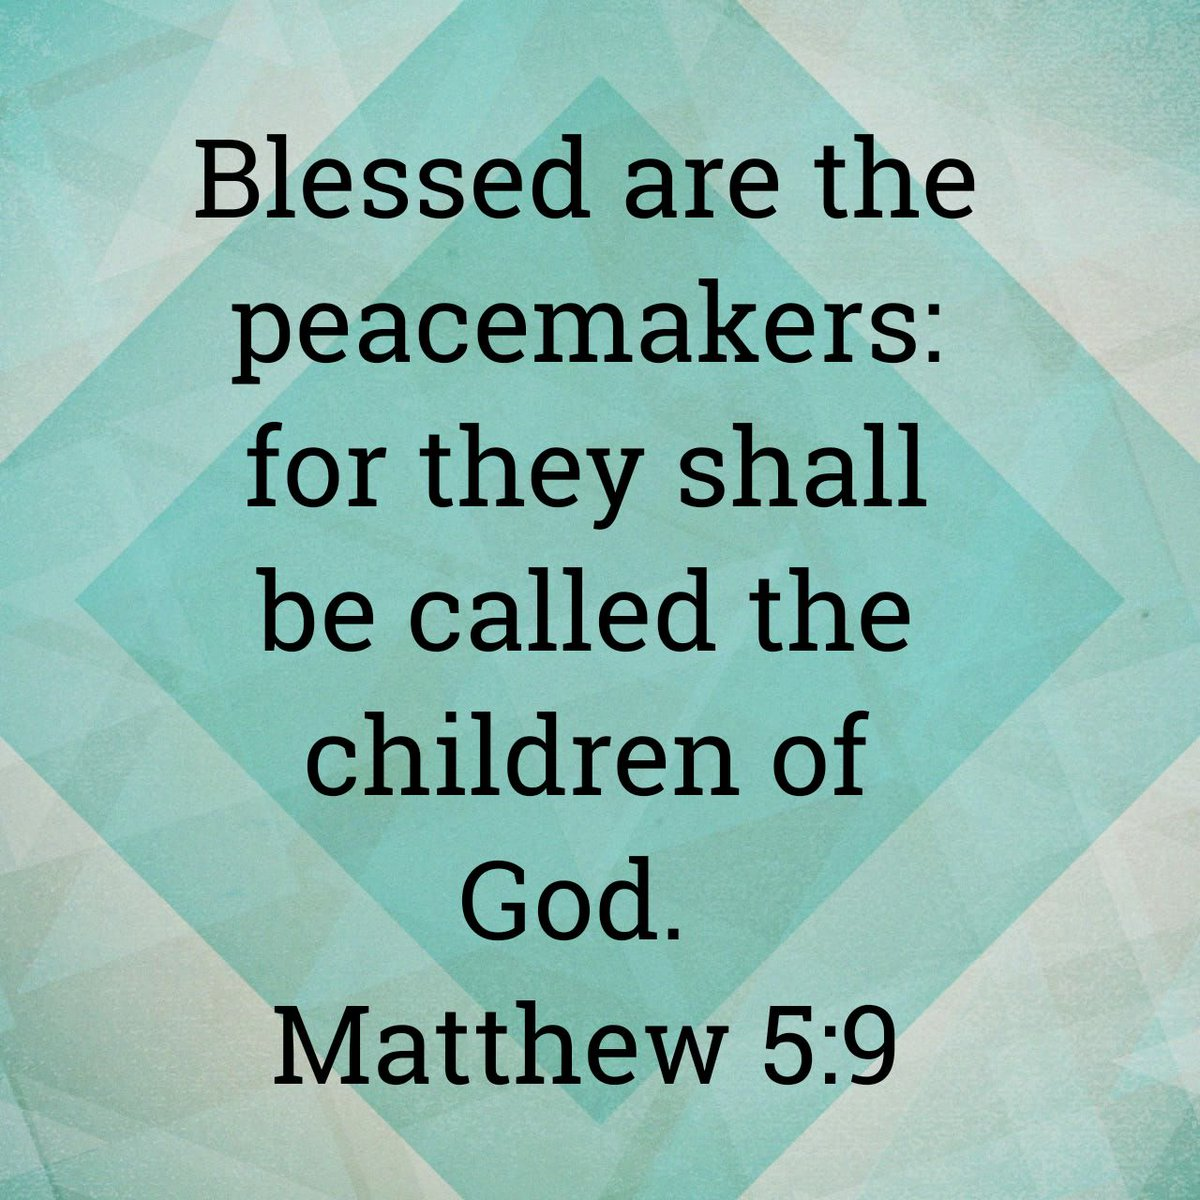 Blessed are the peacemakers: for they shall be called the children of God. Matthew 5:9 KJV